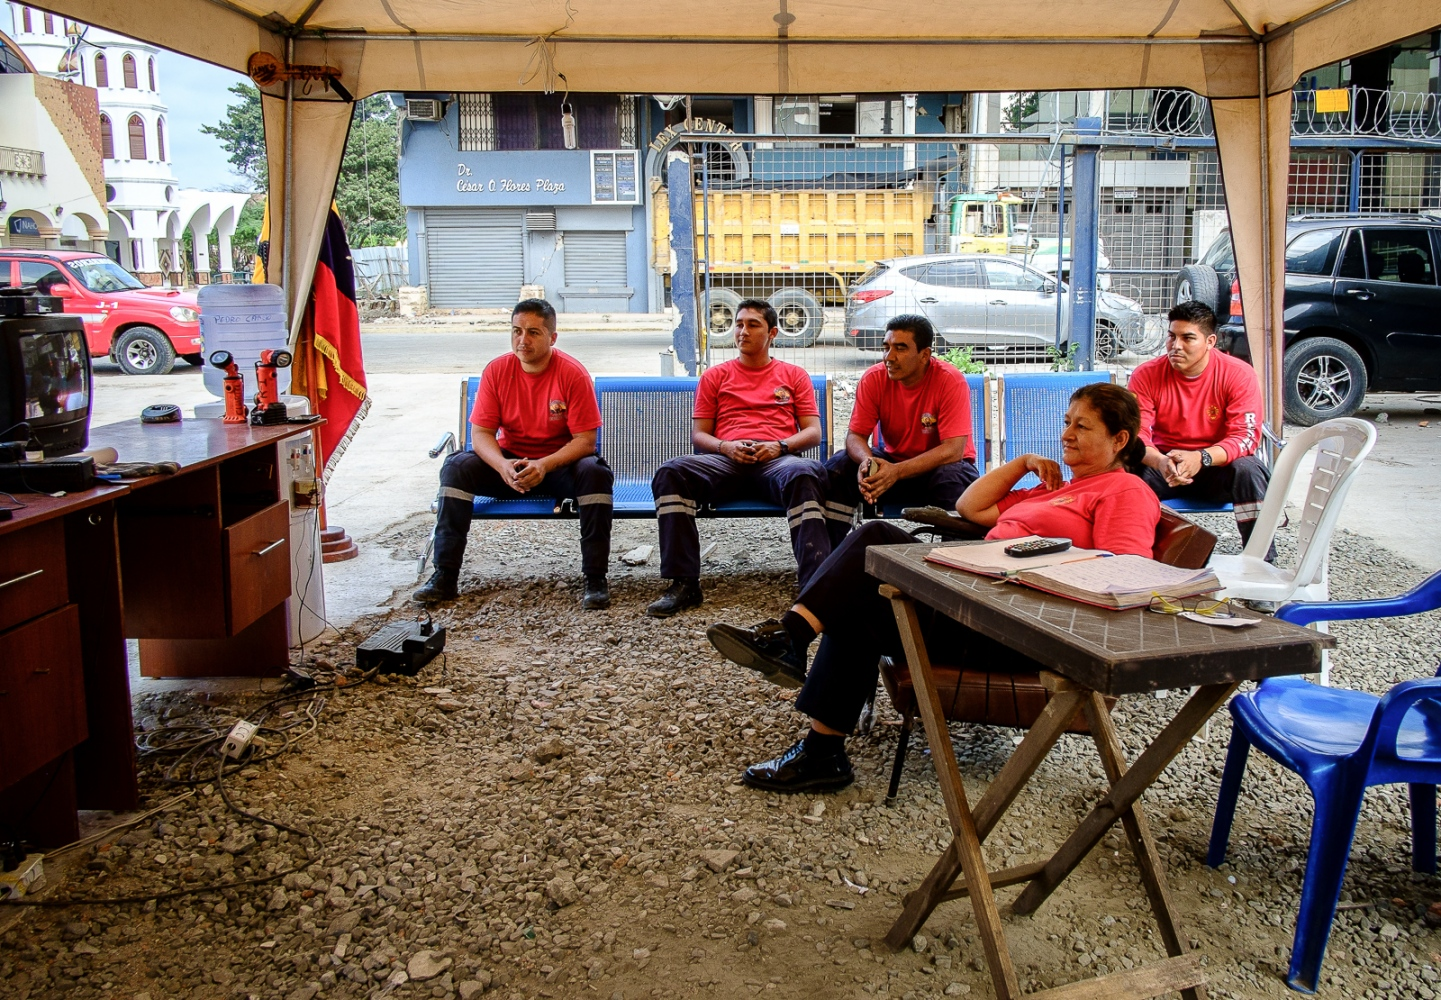 Firemen relax by watching television during their free time in Portoviejo. The fireman headquarters collapsed during the 16th April earthquake and they now operate under tents until a new headquarters is build.